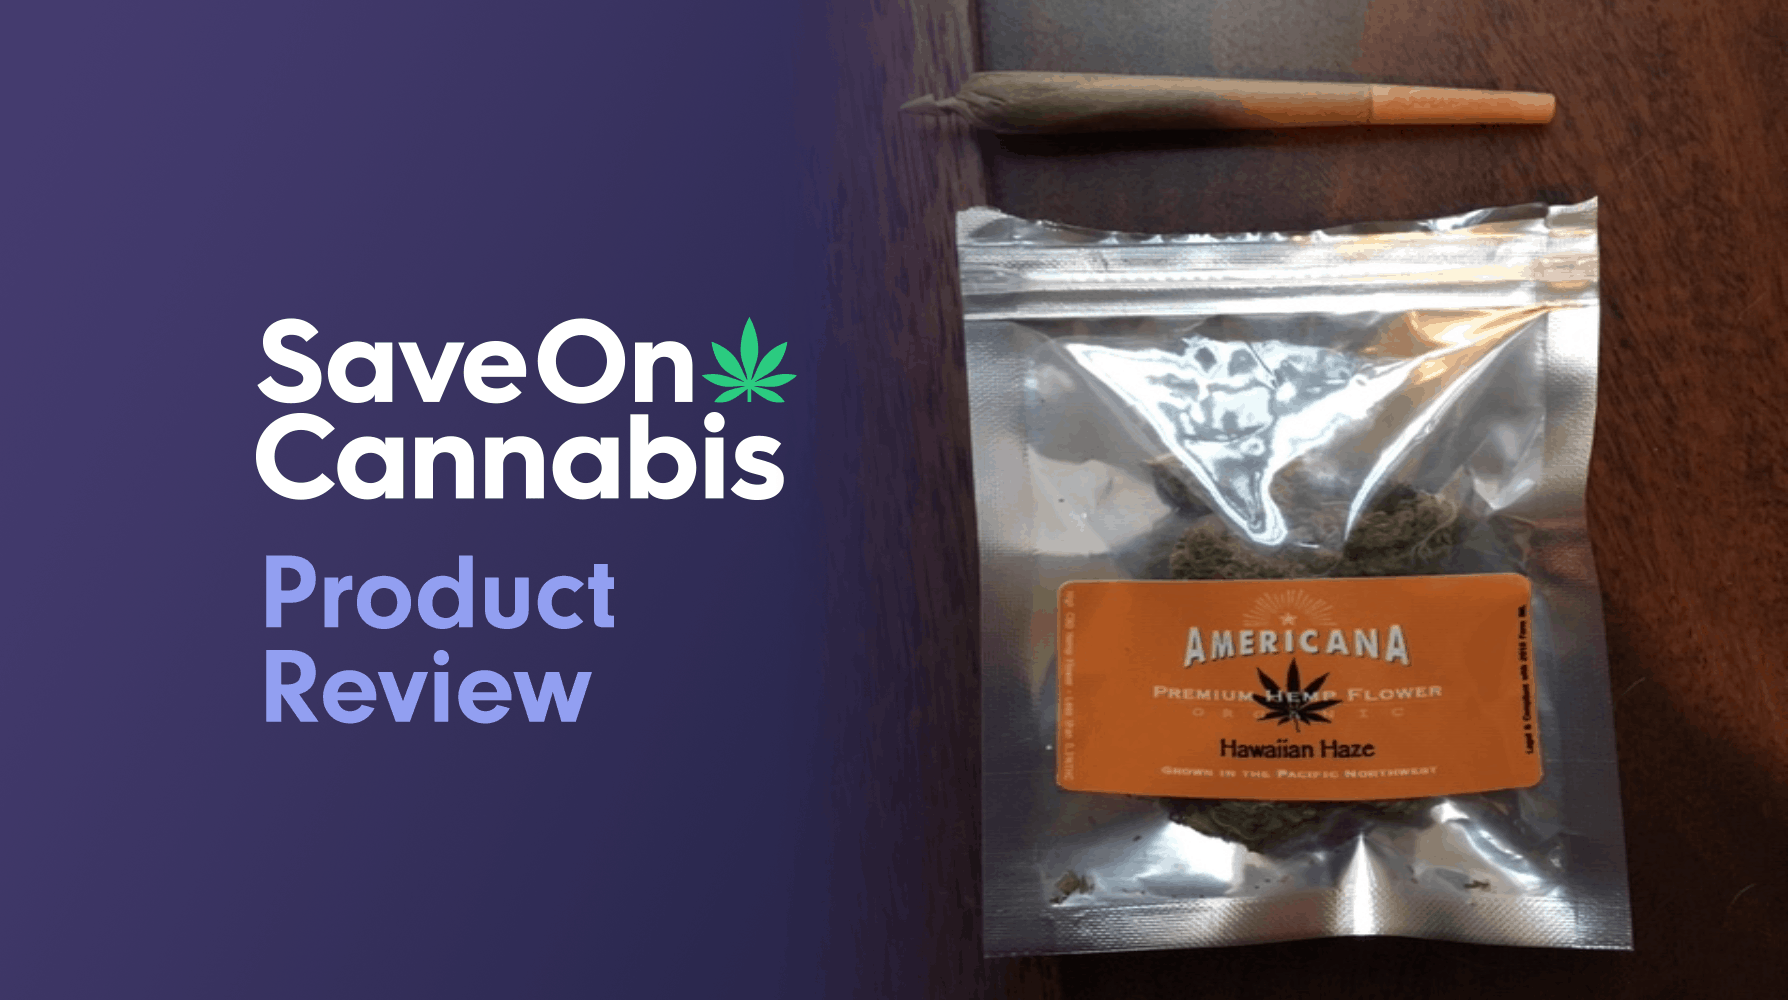 Americana Premium Hemp Flower Hawaiian Haze Save On Cannabis Review Website